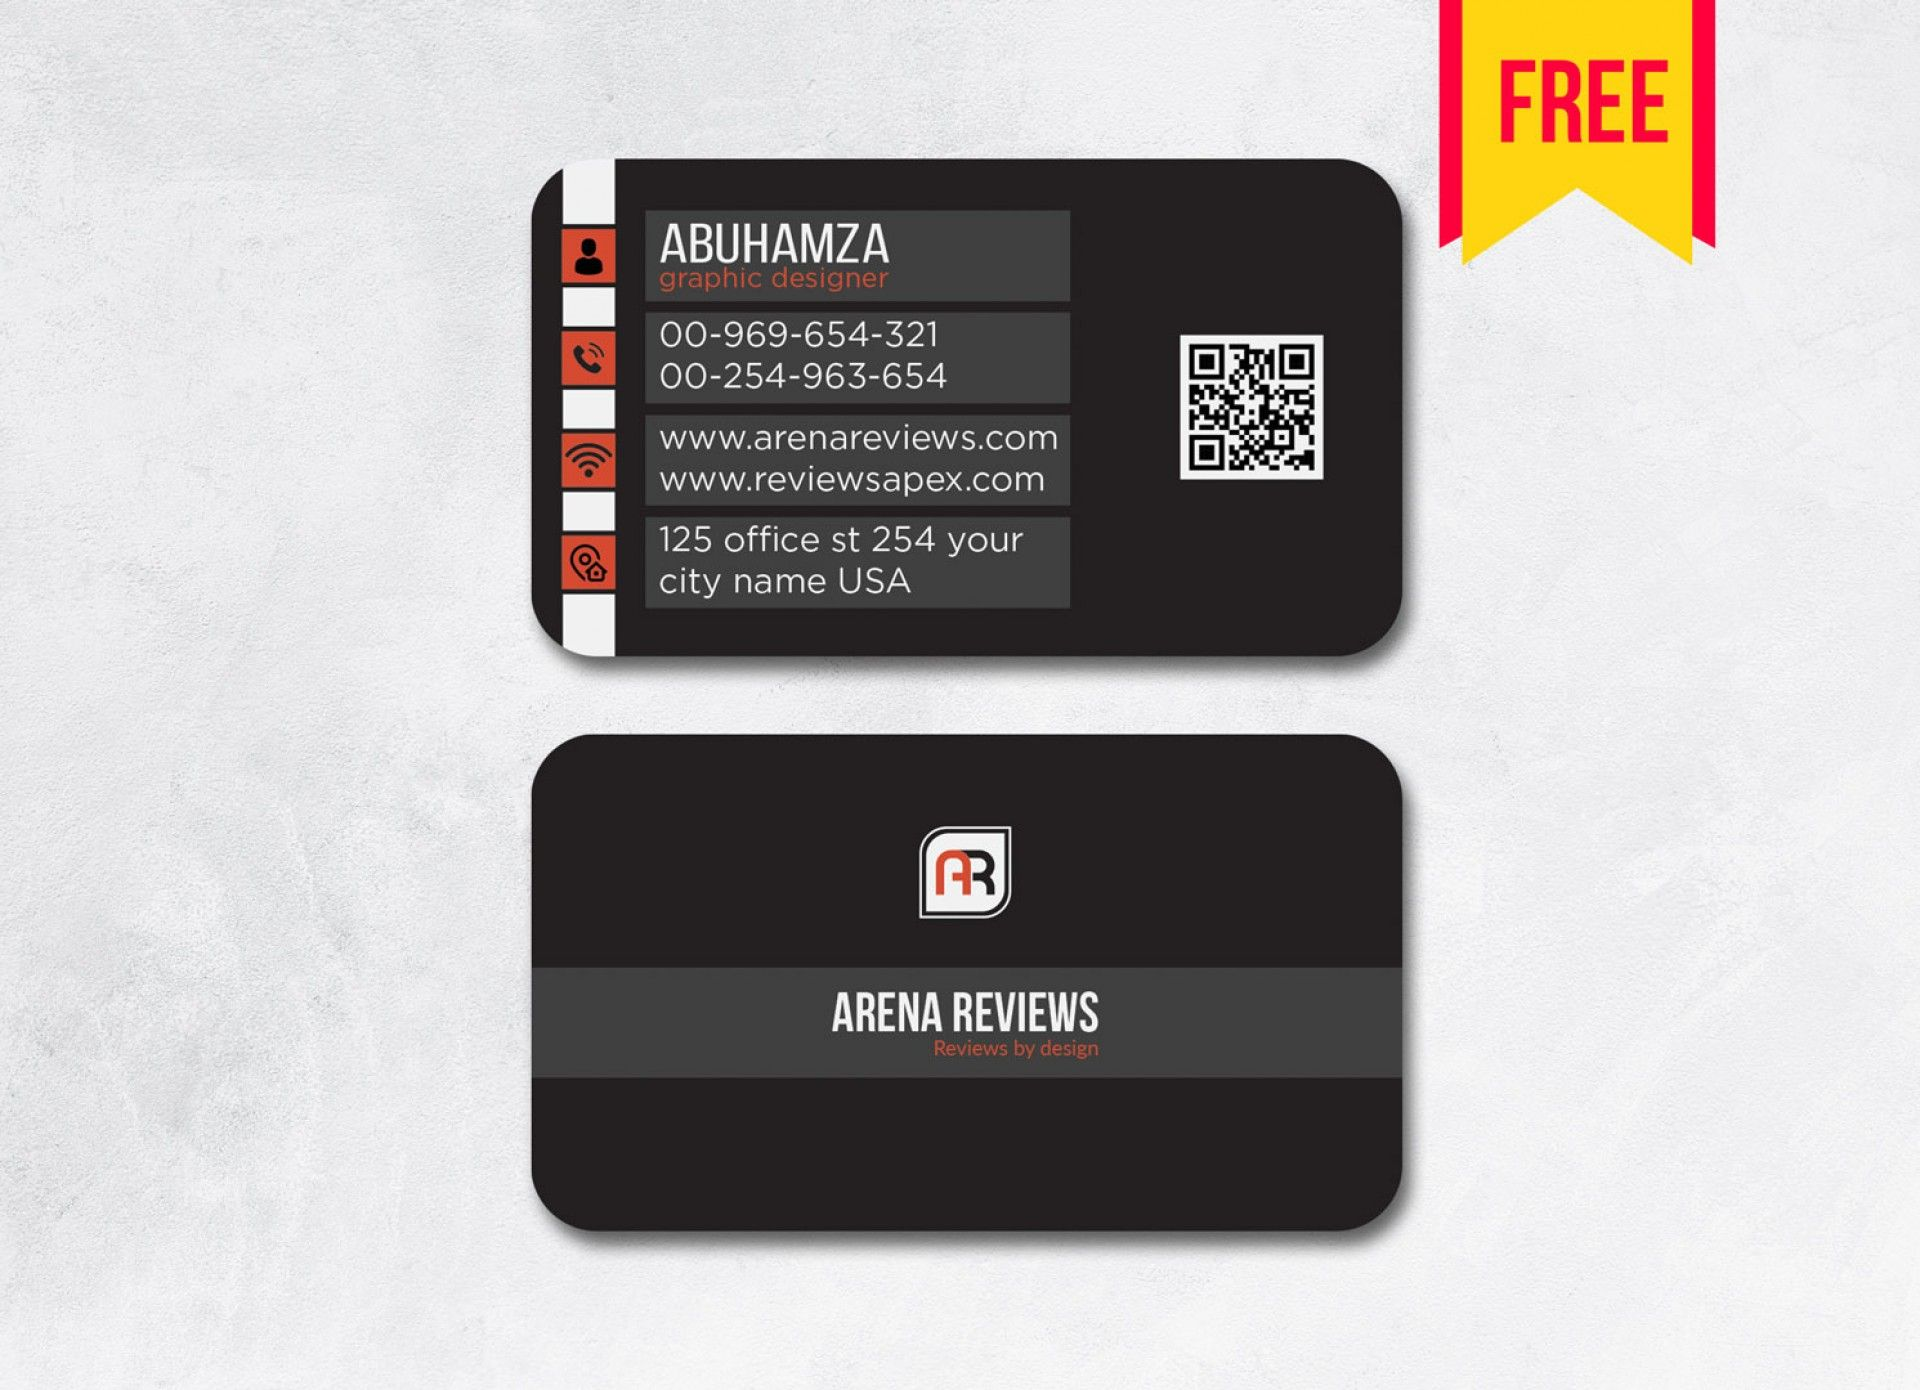 046 Template Ideas Office Business Phenomenal Card Avery Within Office De Business Card Template Photoshop Visiting Card Templates Free Business Card Templates